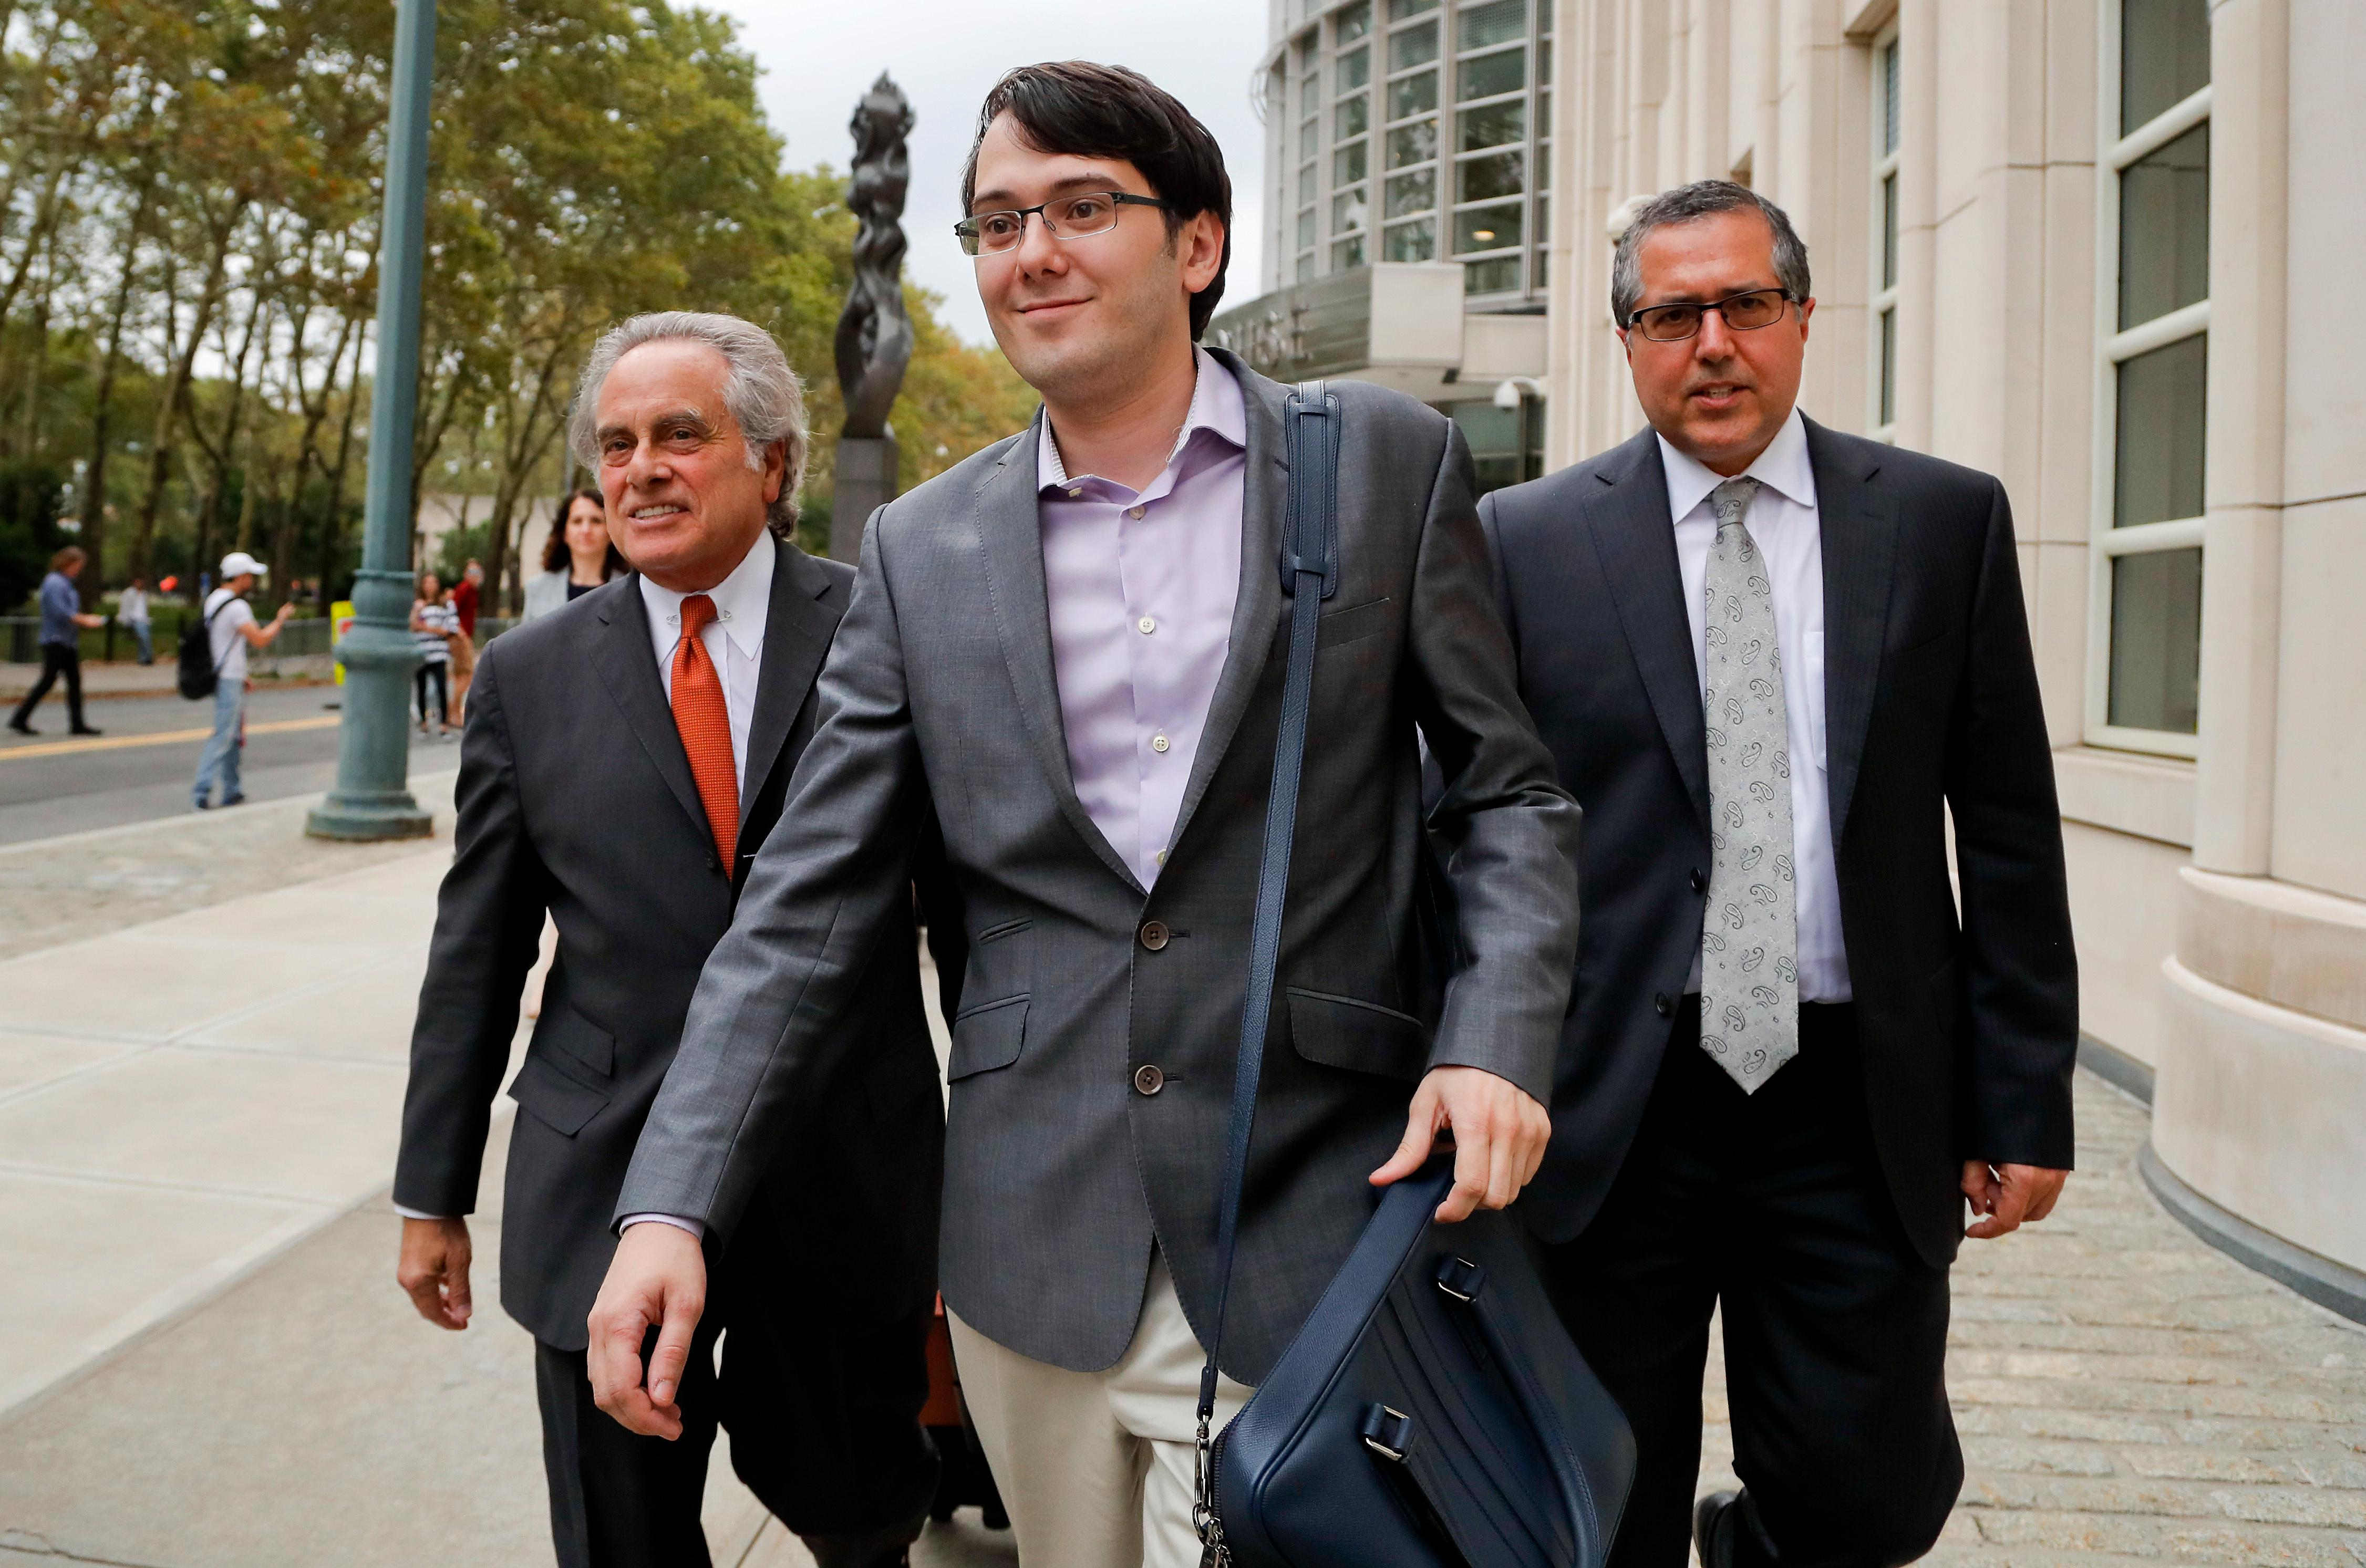 FILE - In this Thursday, July 27, 2017, file photo, former biotech CEO Martin Shkreli, center, leaves federal court with his attorney Benjamin Brafman, left, in New York.  (AP Photo/Julie Jacobson, File)